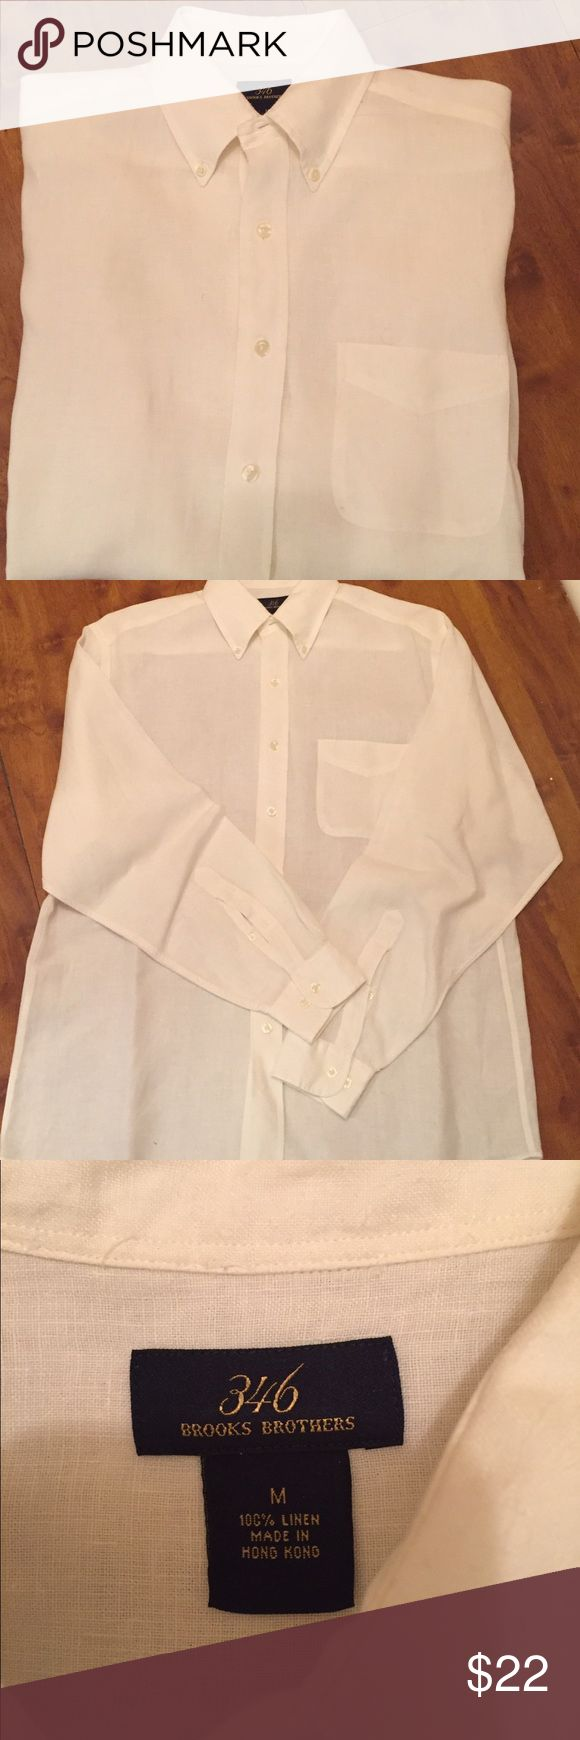 Brooks Brothers 346 button down White Brooks Brothers button down. In new excellent condition. Size m Brooks Brothers Shirts Casual Button Down Shirts